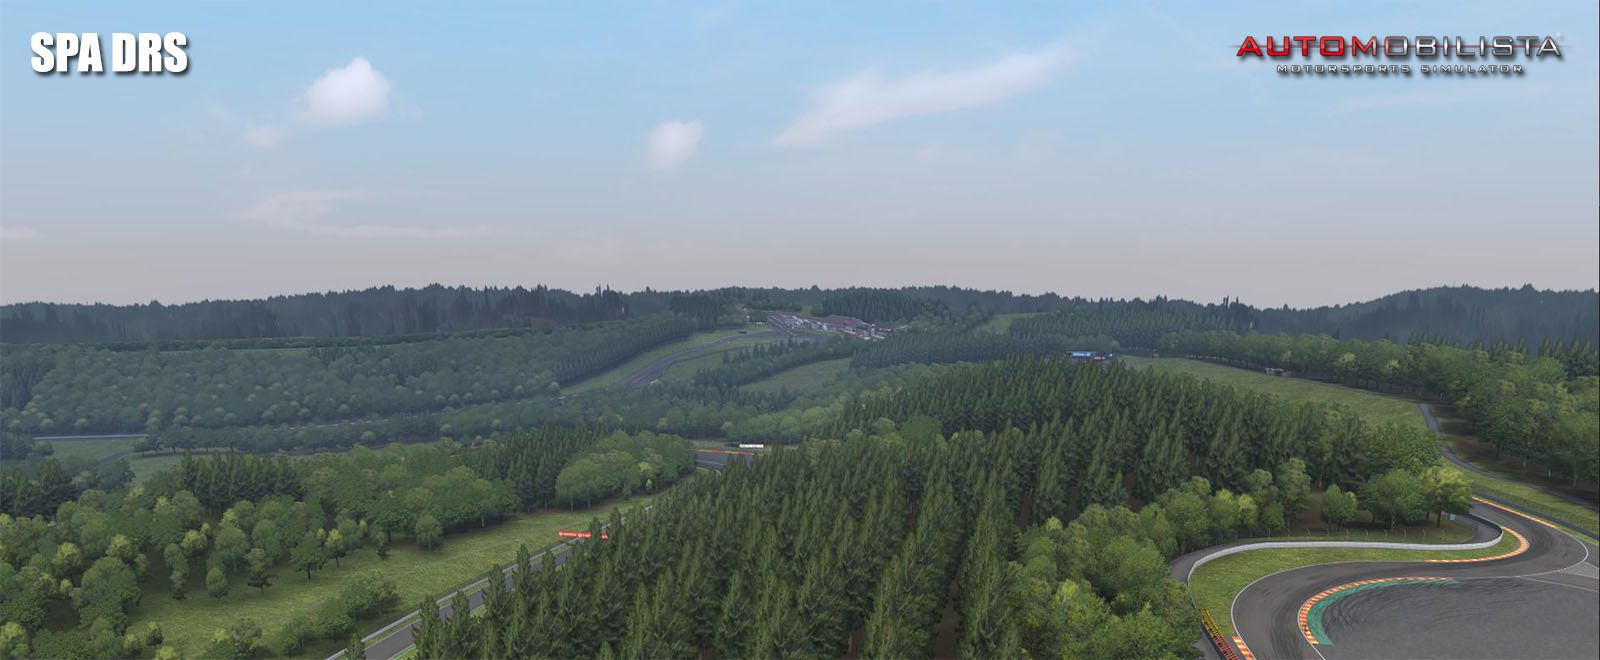 Automobilista circuit Spa Francorchamps disponible !